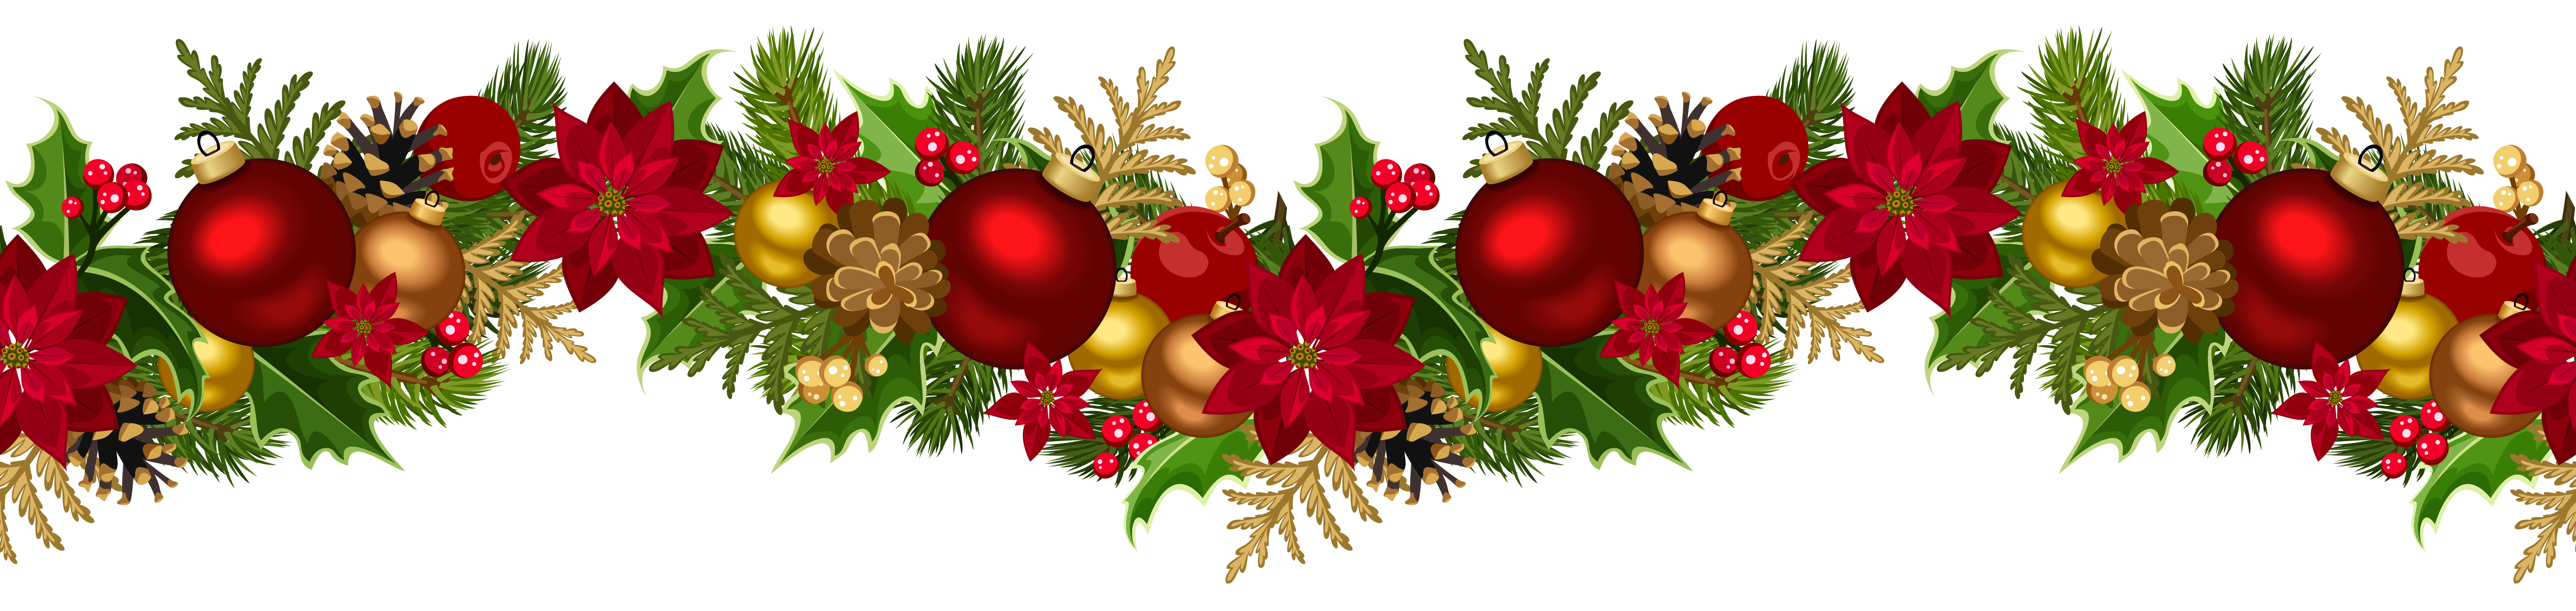 Christmas decorations clipart borders free stock Christmas decorations clipart borders - crazywidow.info free stock